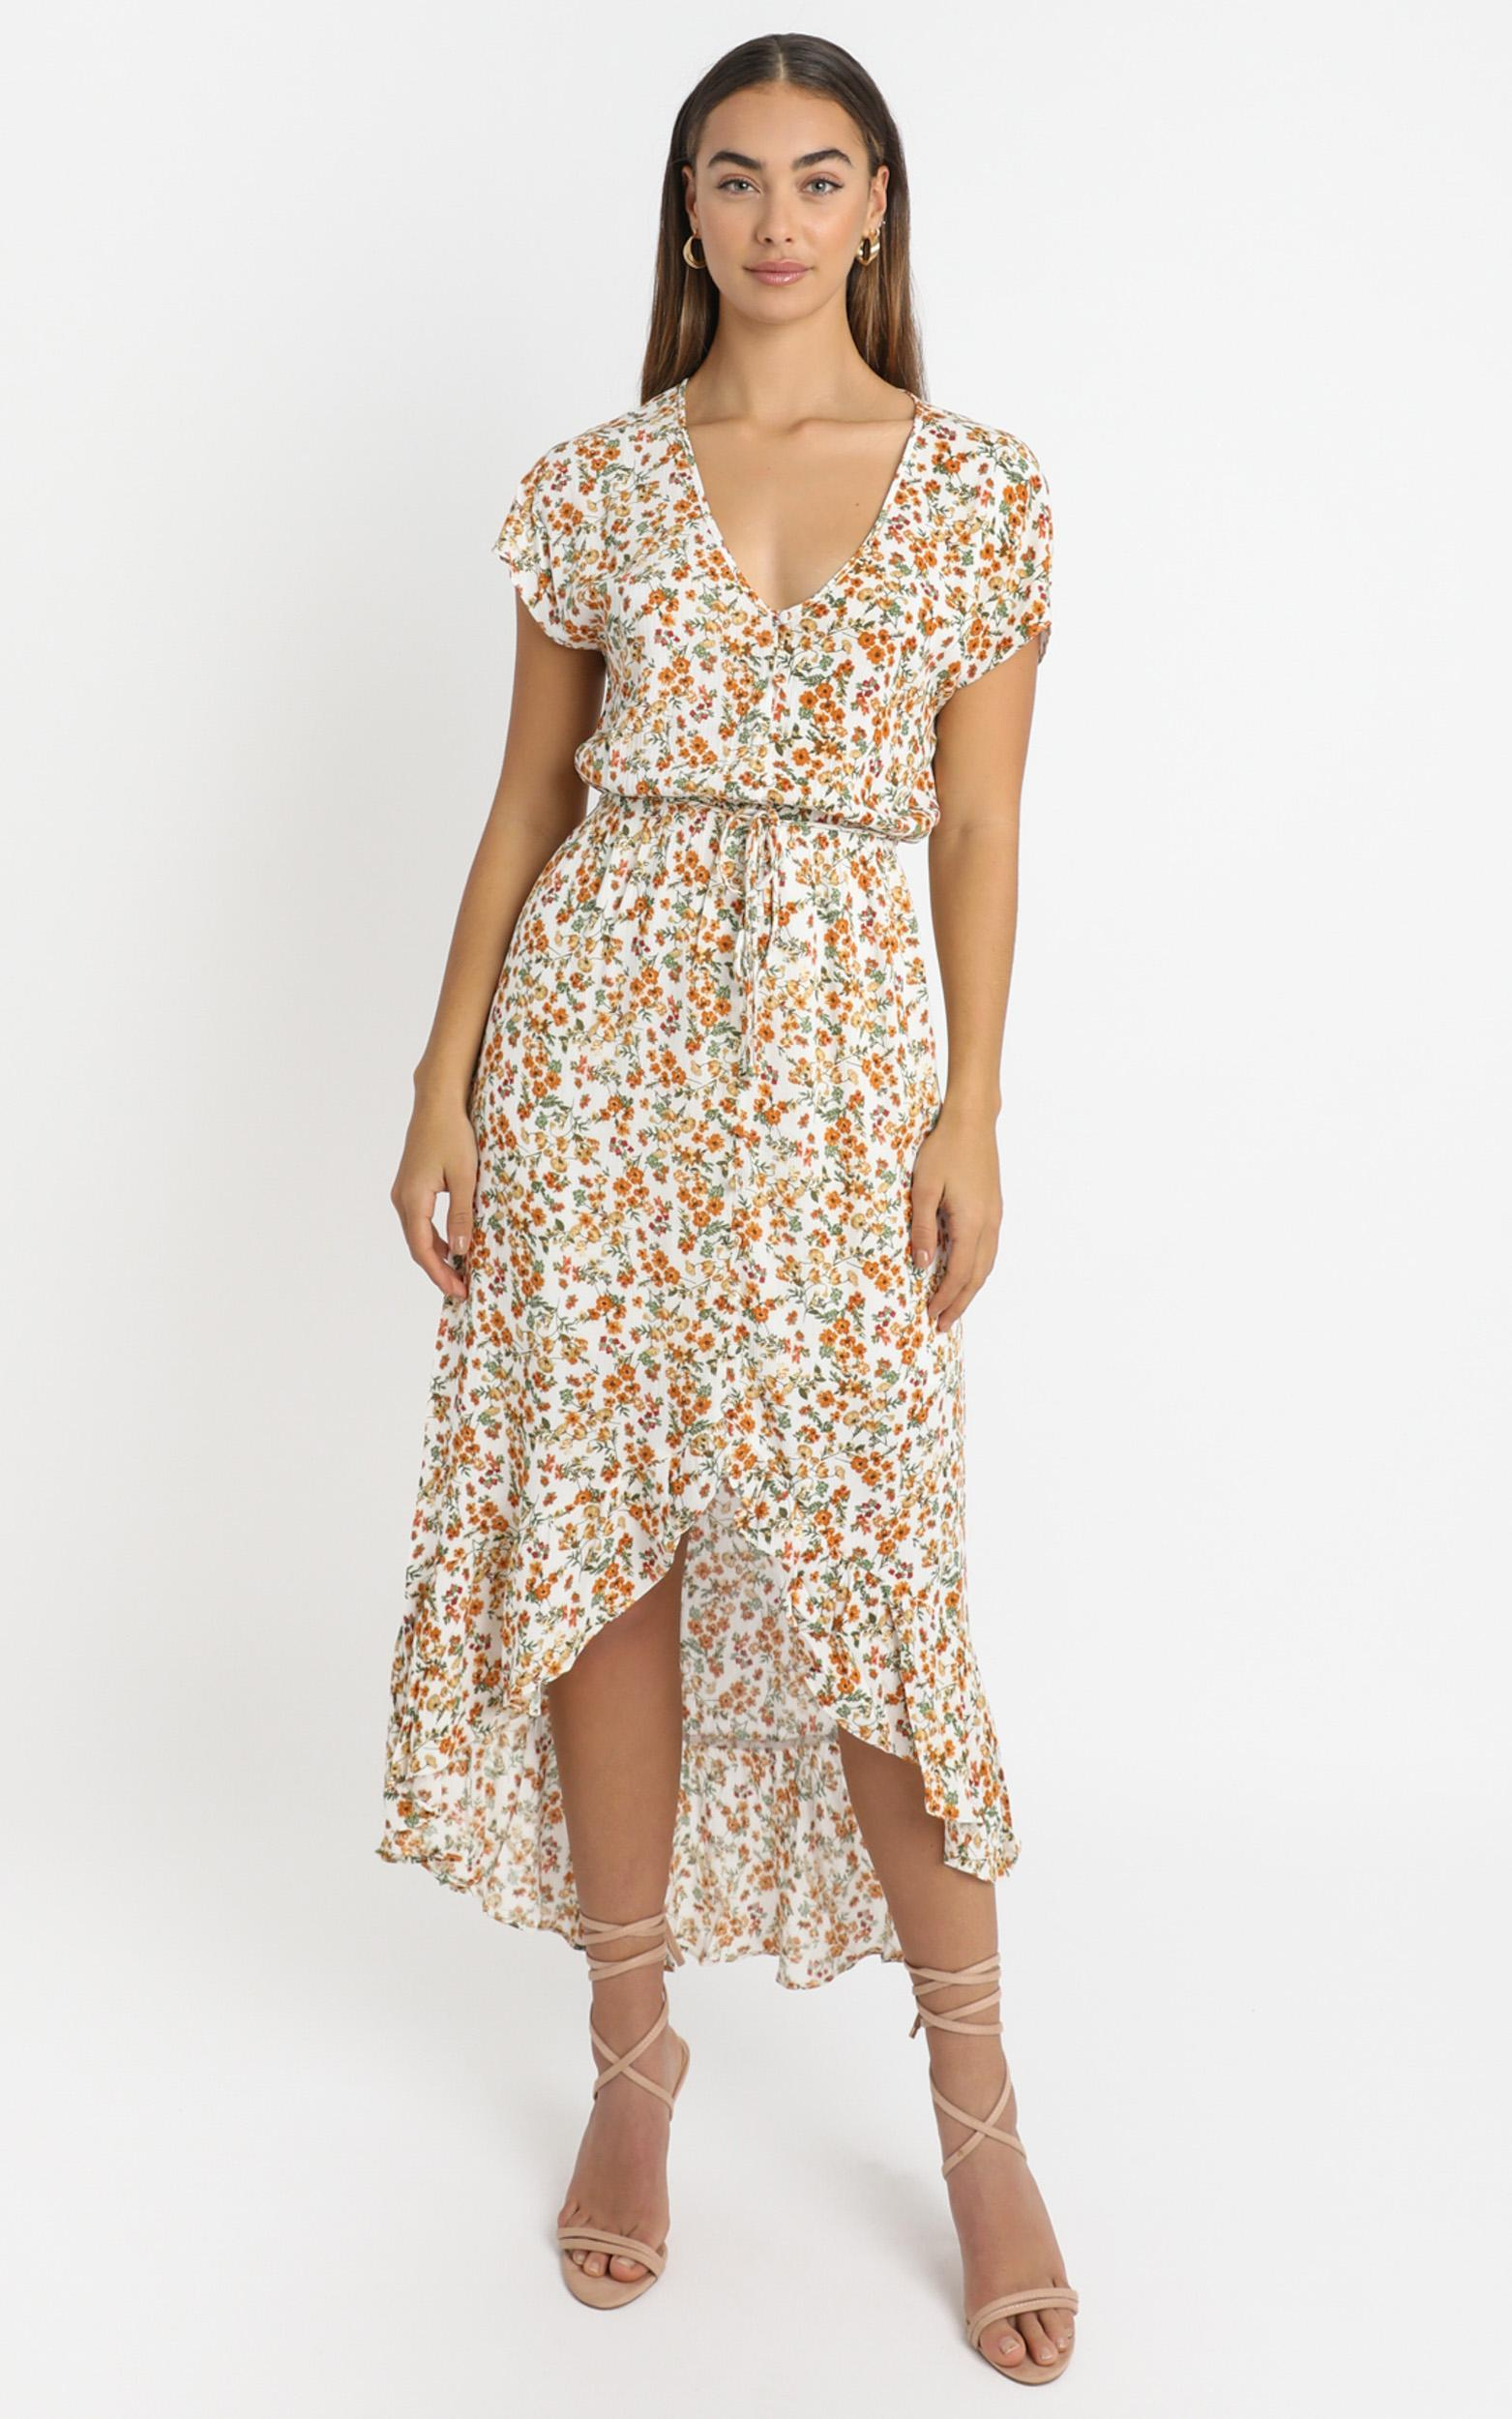 Adira Dress in White Floral - 6 (XS), White, hi-res image number null